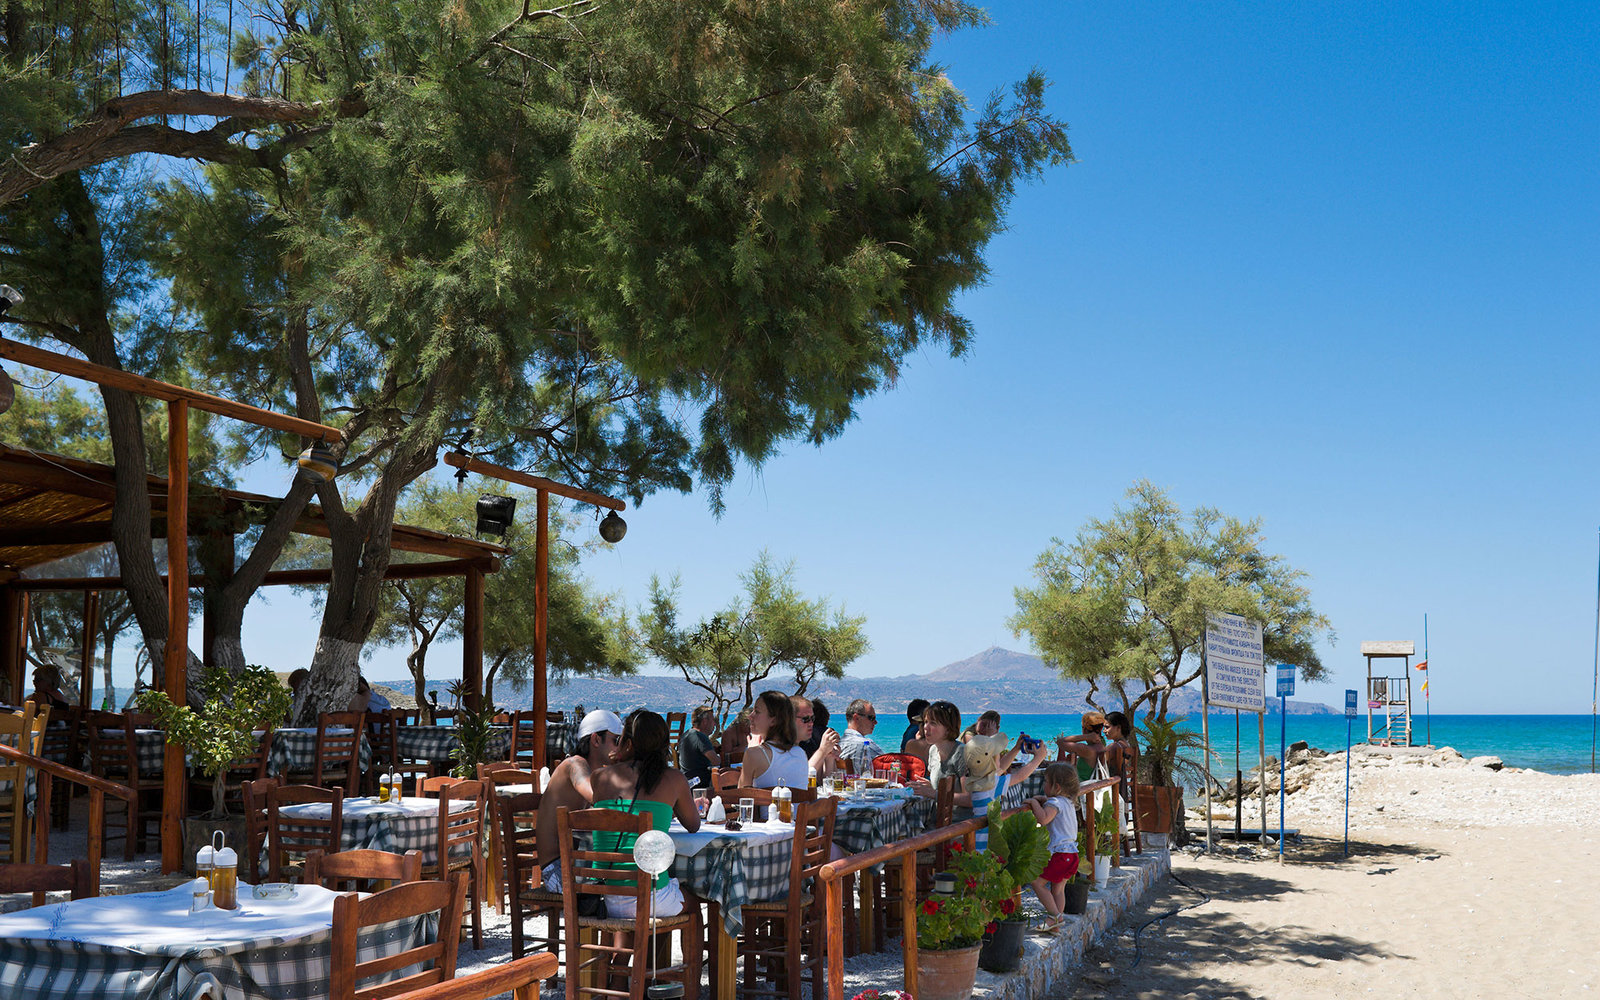 BCG9A3 Traditional Taverna on the beach at Almyrida, Chania Province, Crete, Greece